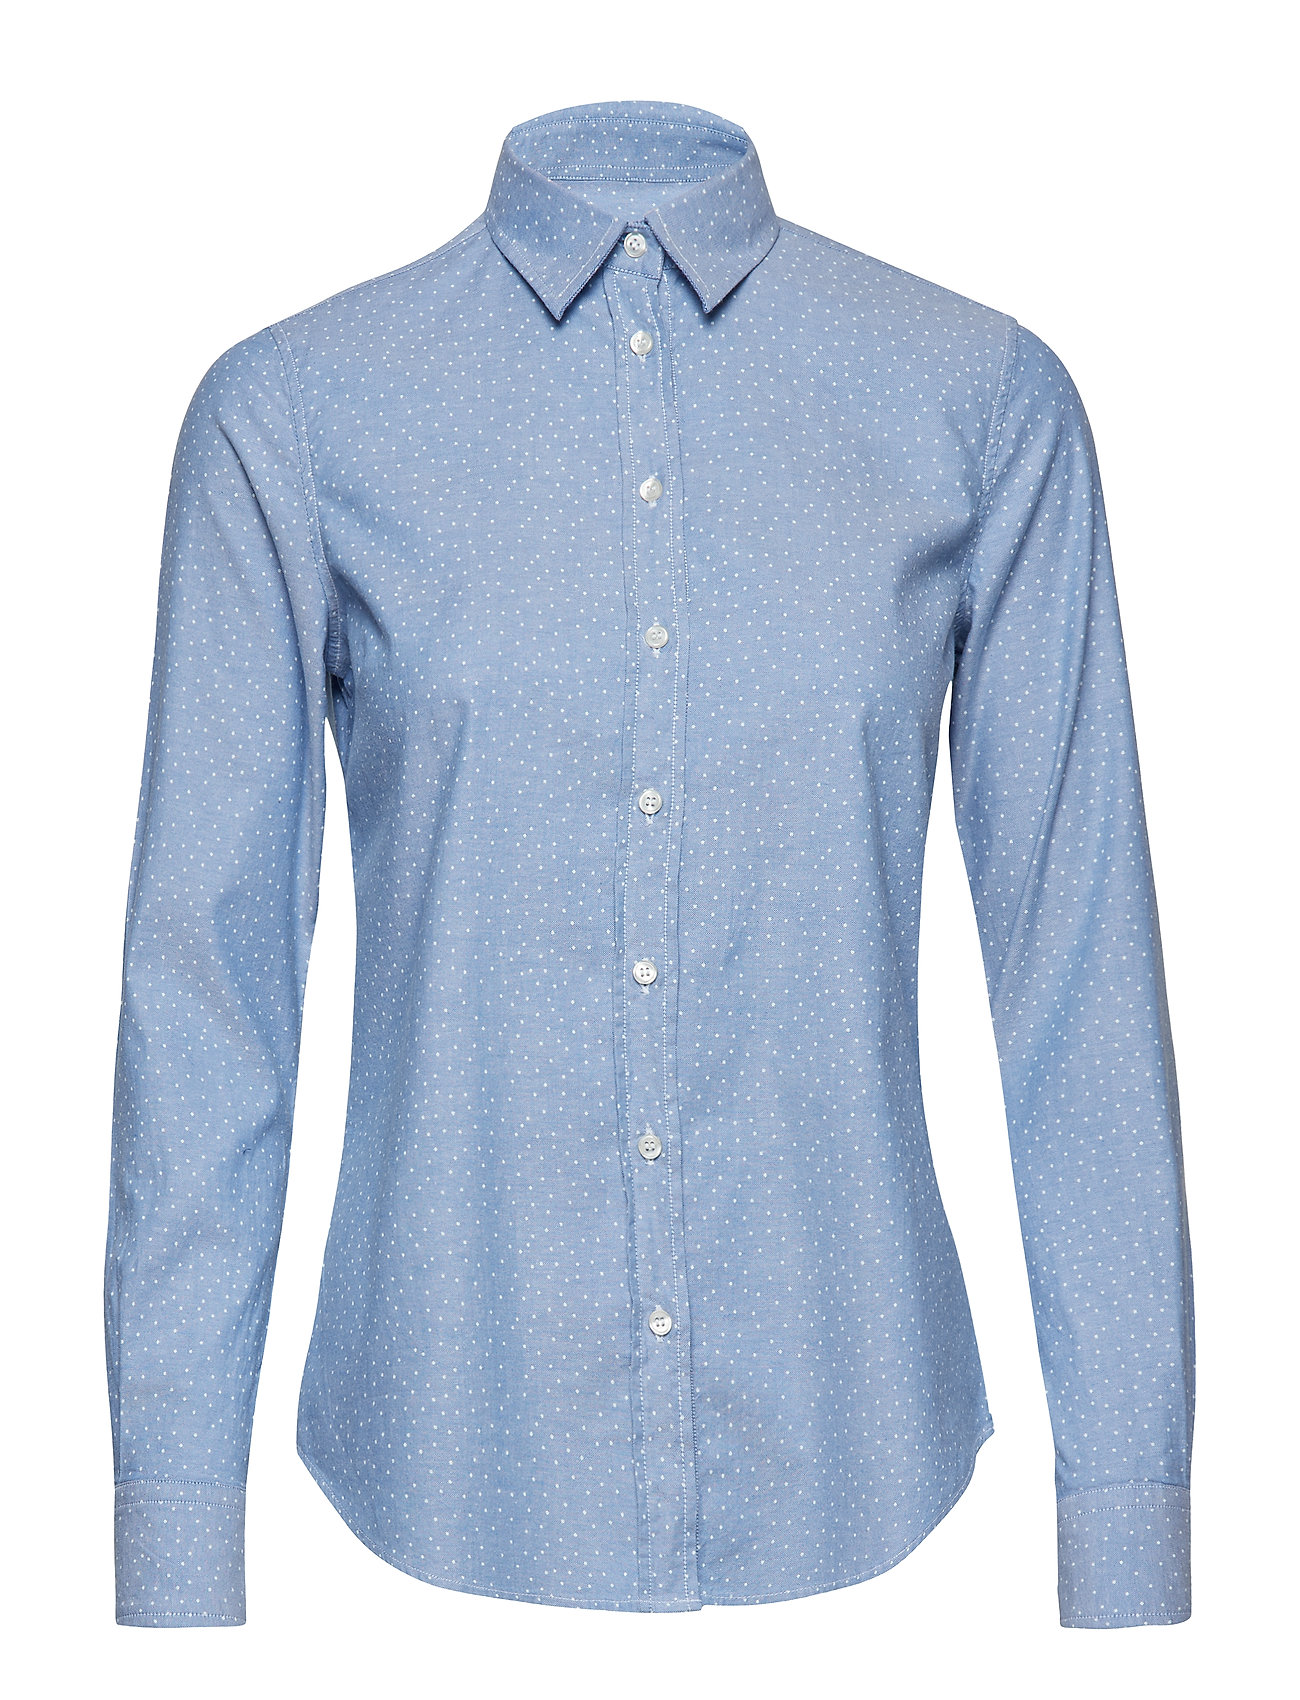 Gant O1. SNOWDOT OXFORD SHIRT - NAUTICAL BLUE